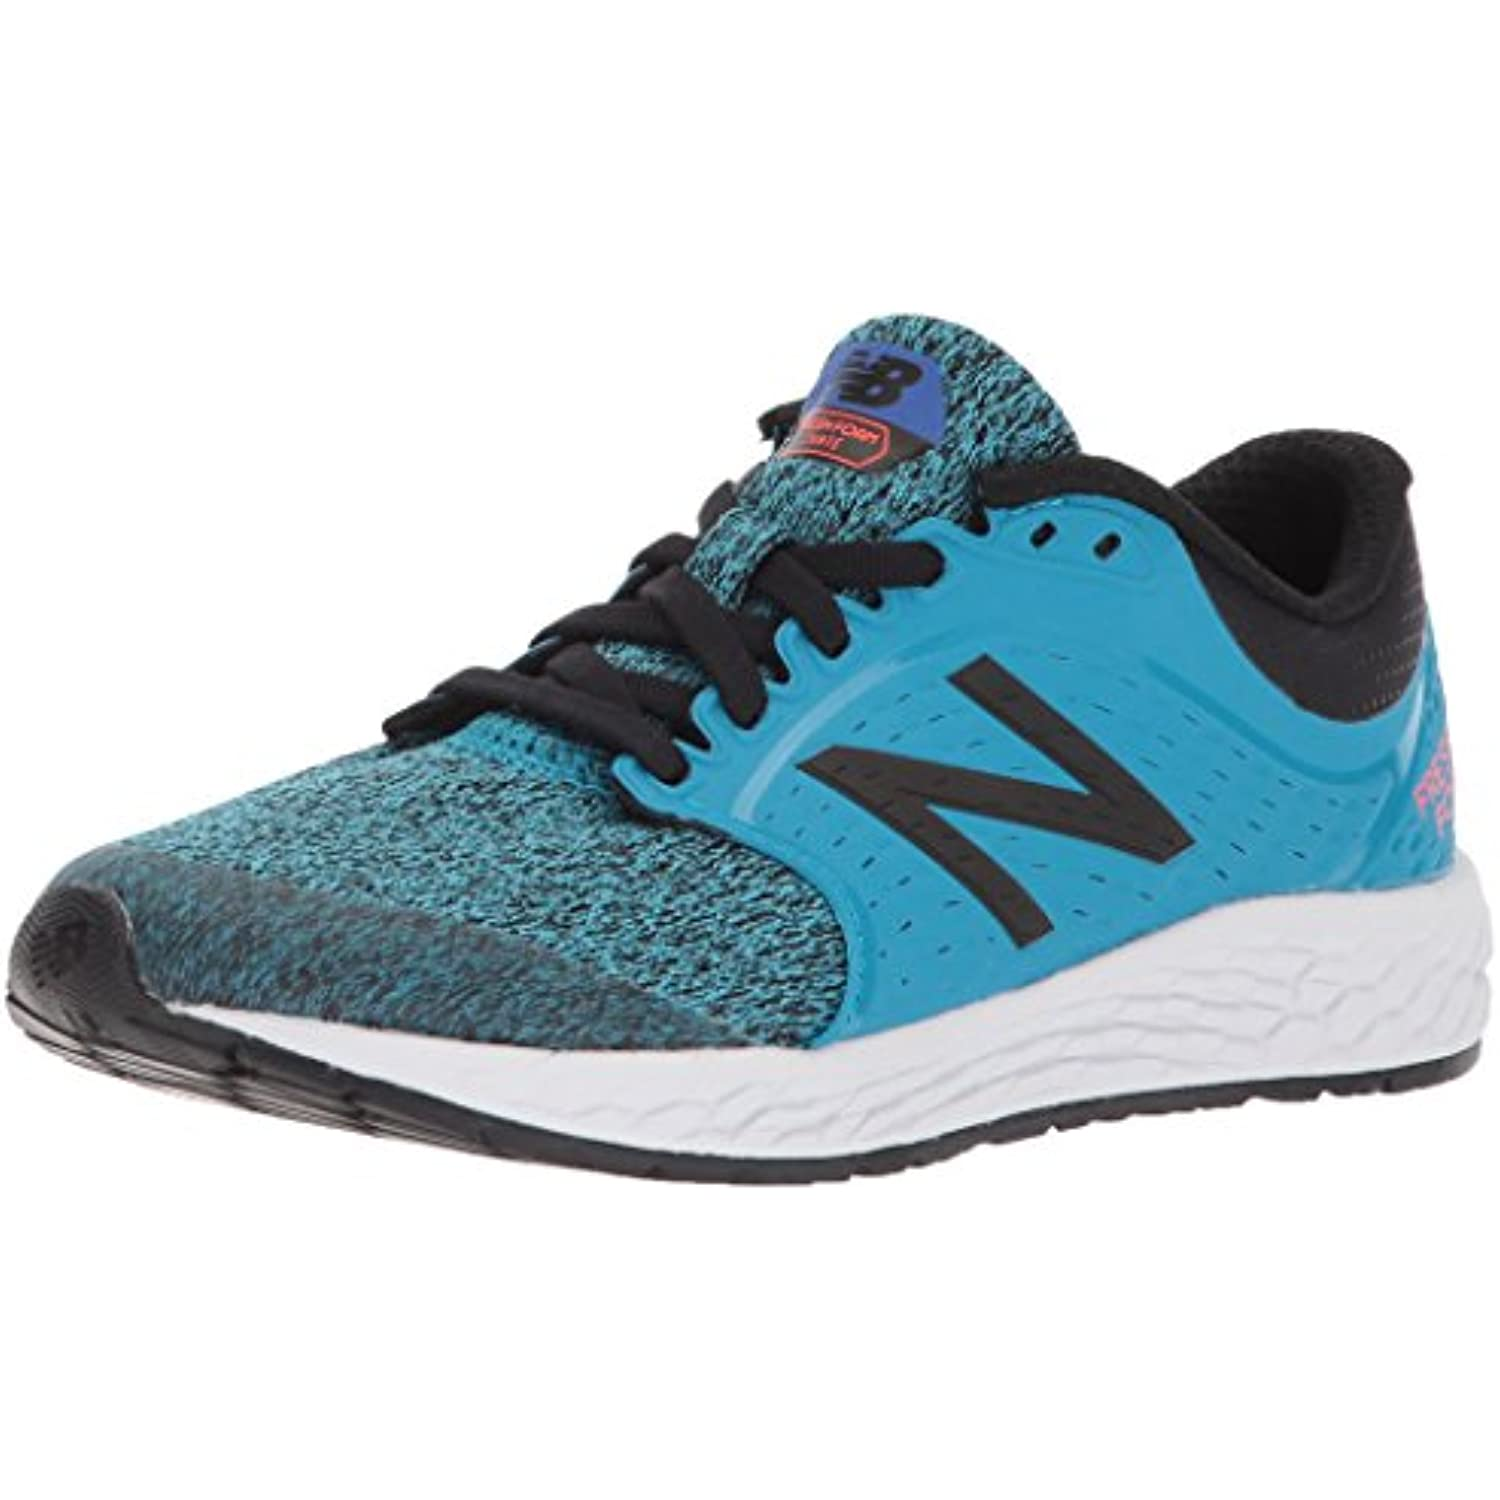 New Balance Fresh Foam Scarpe Zante V4 GS Junior Scarpe Foam da Corsa - SS18  Parent b80da8